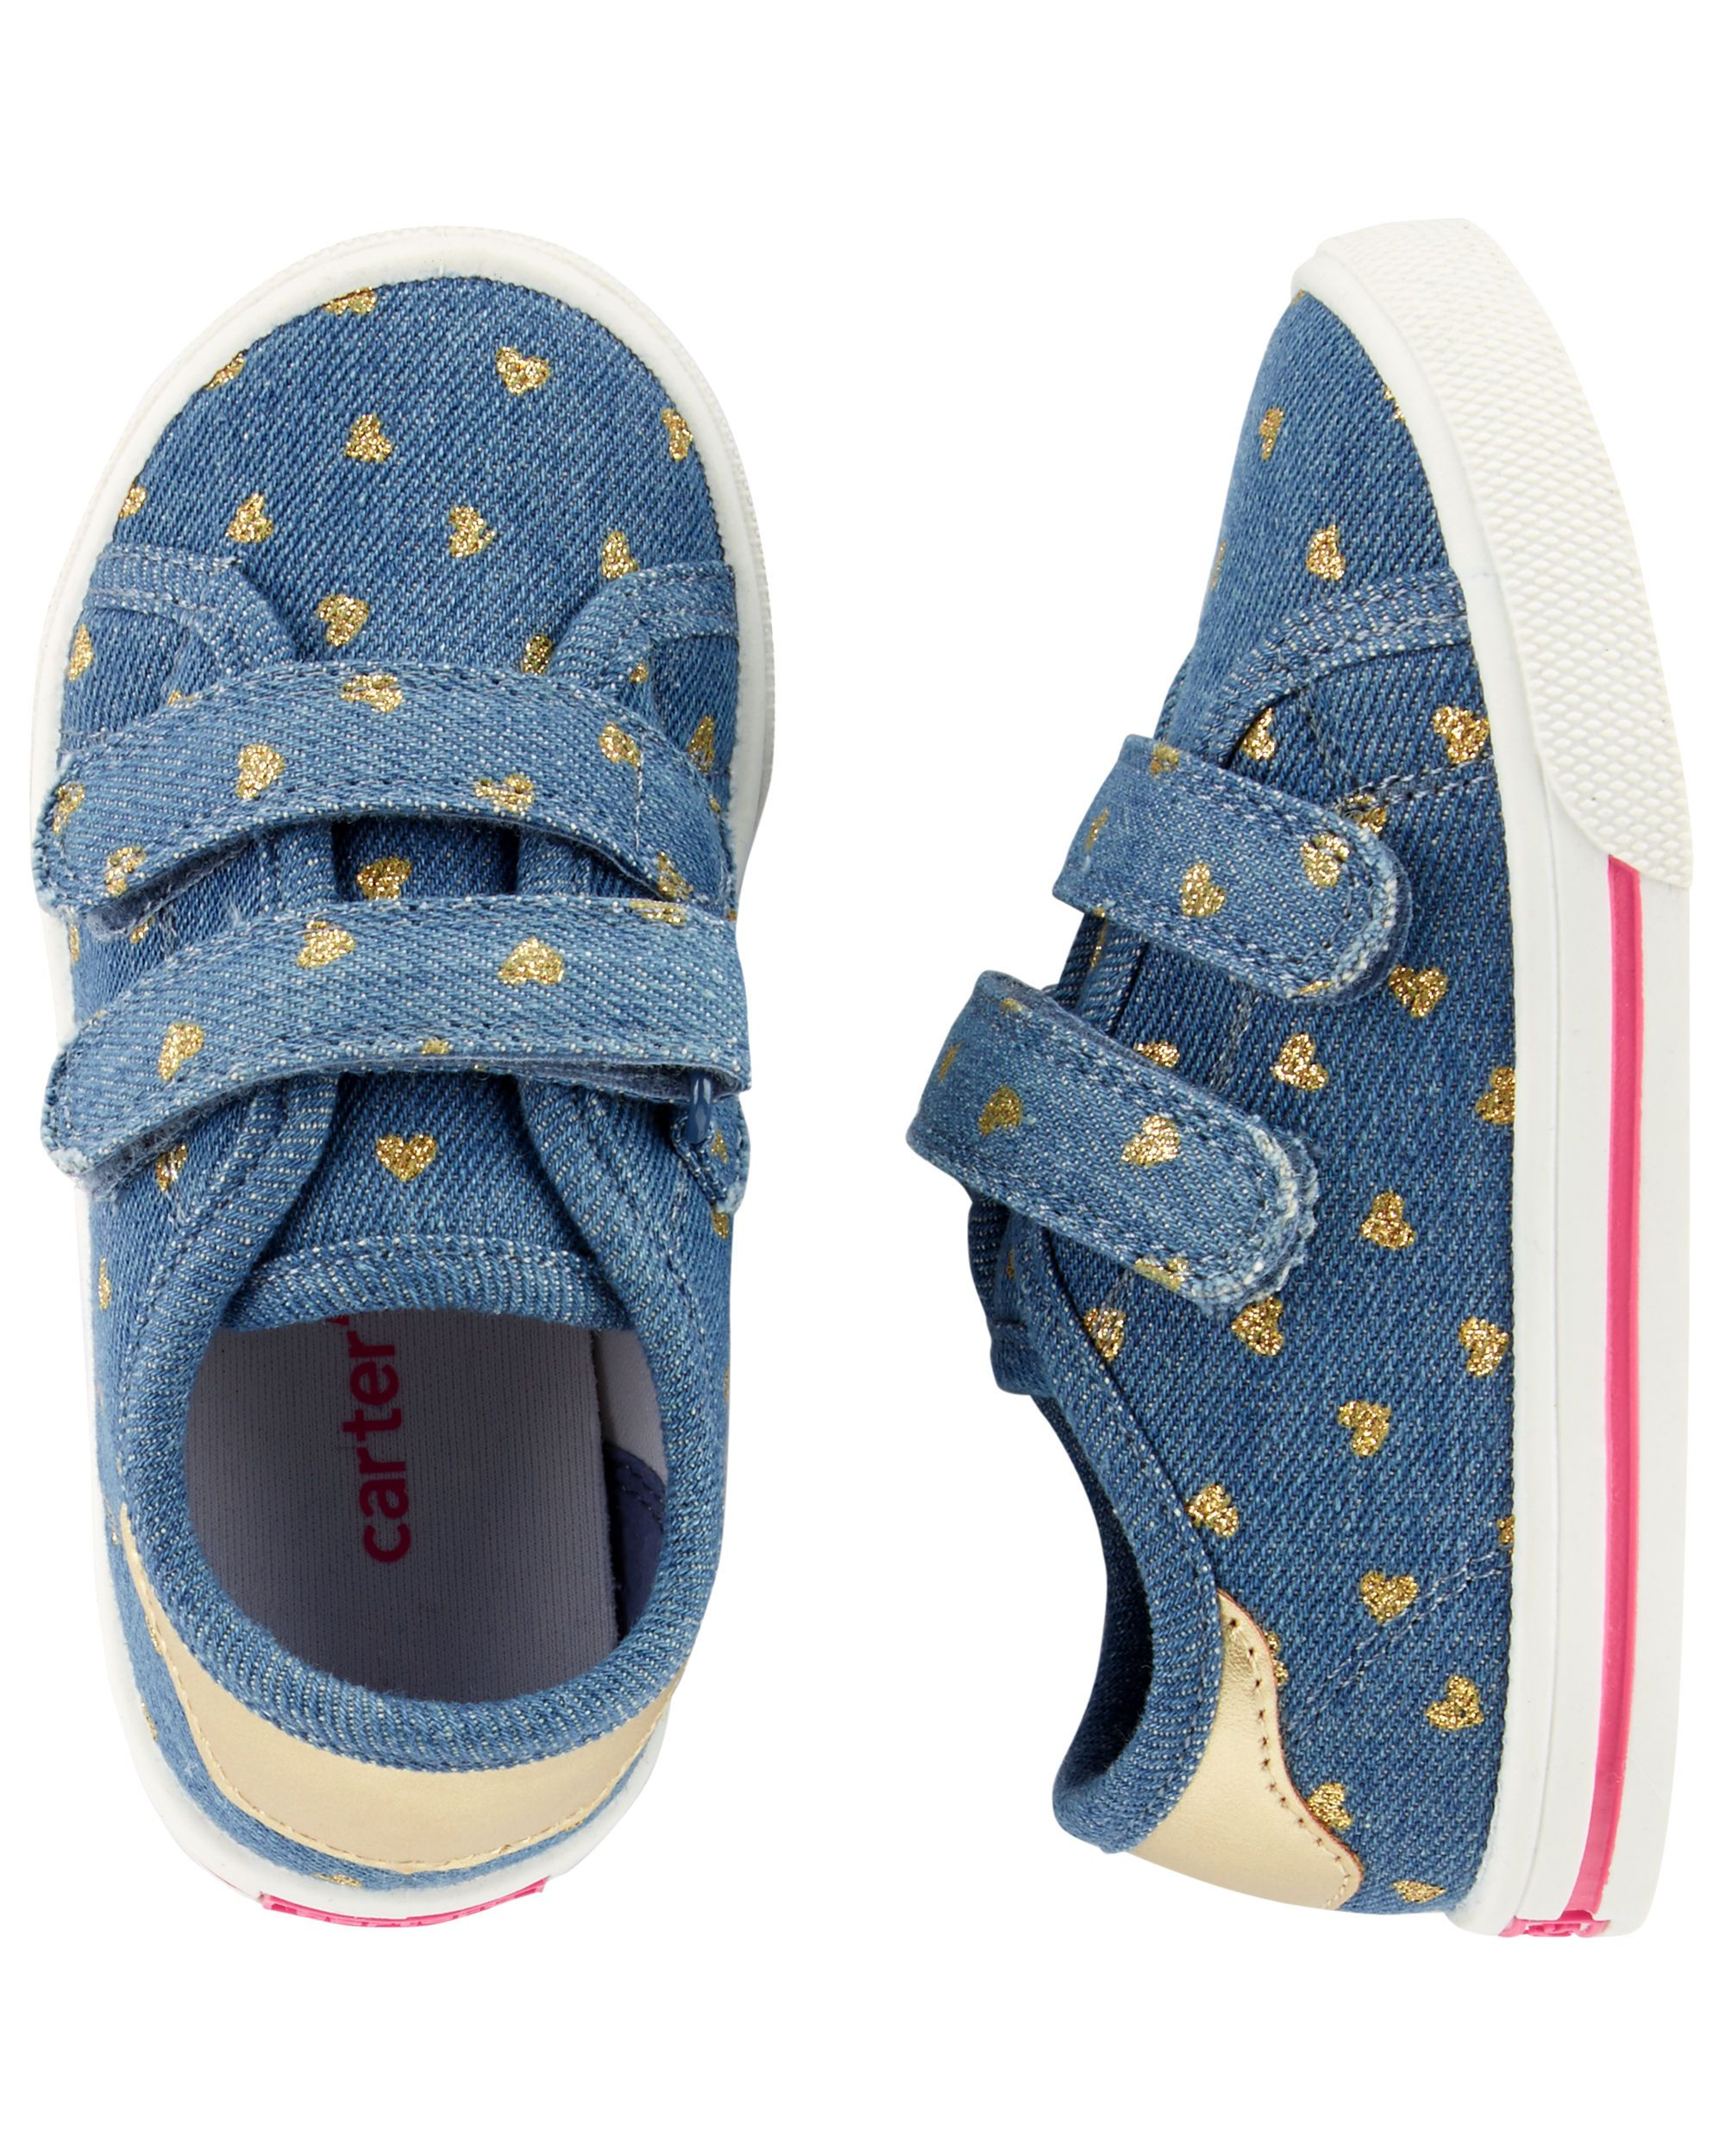 Toddler girl shoes, Discount kids